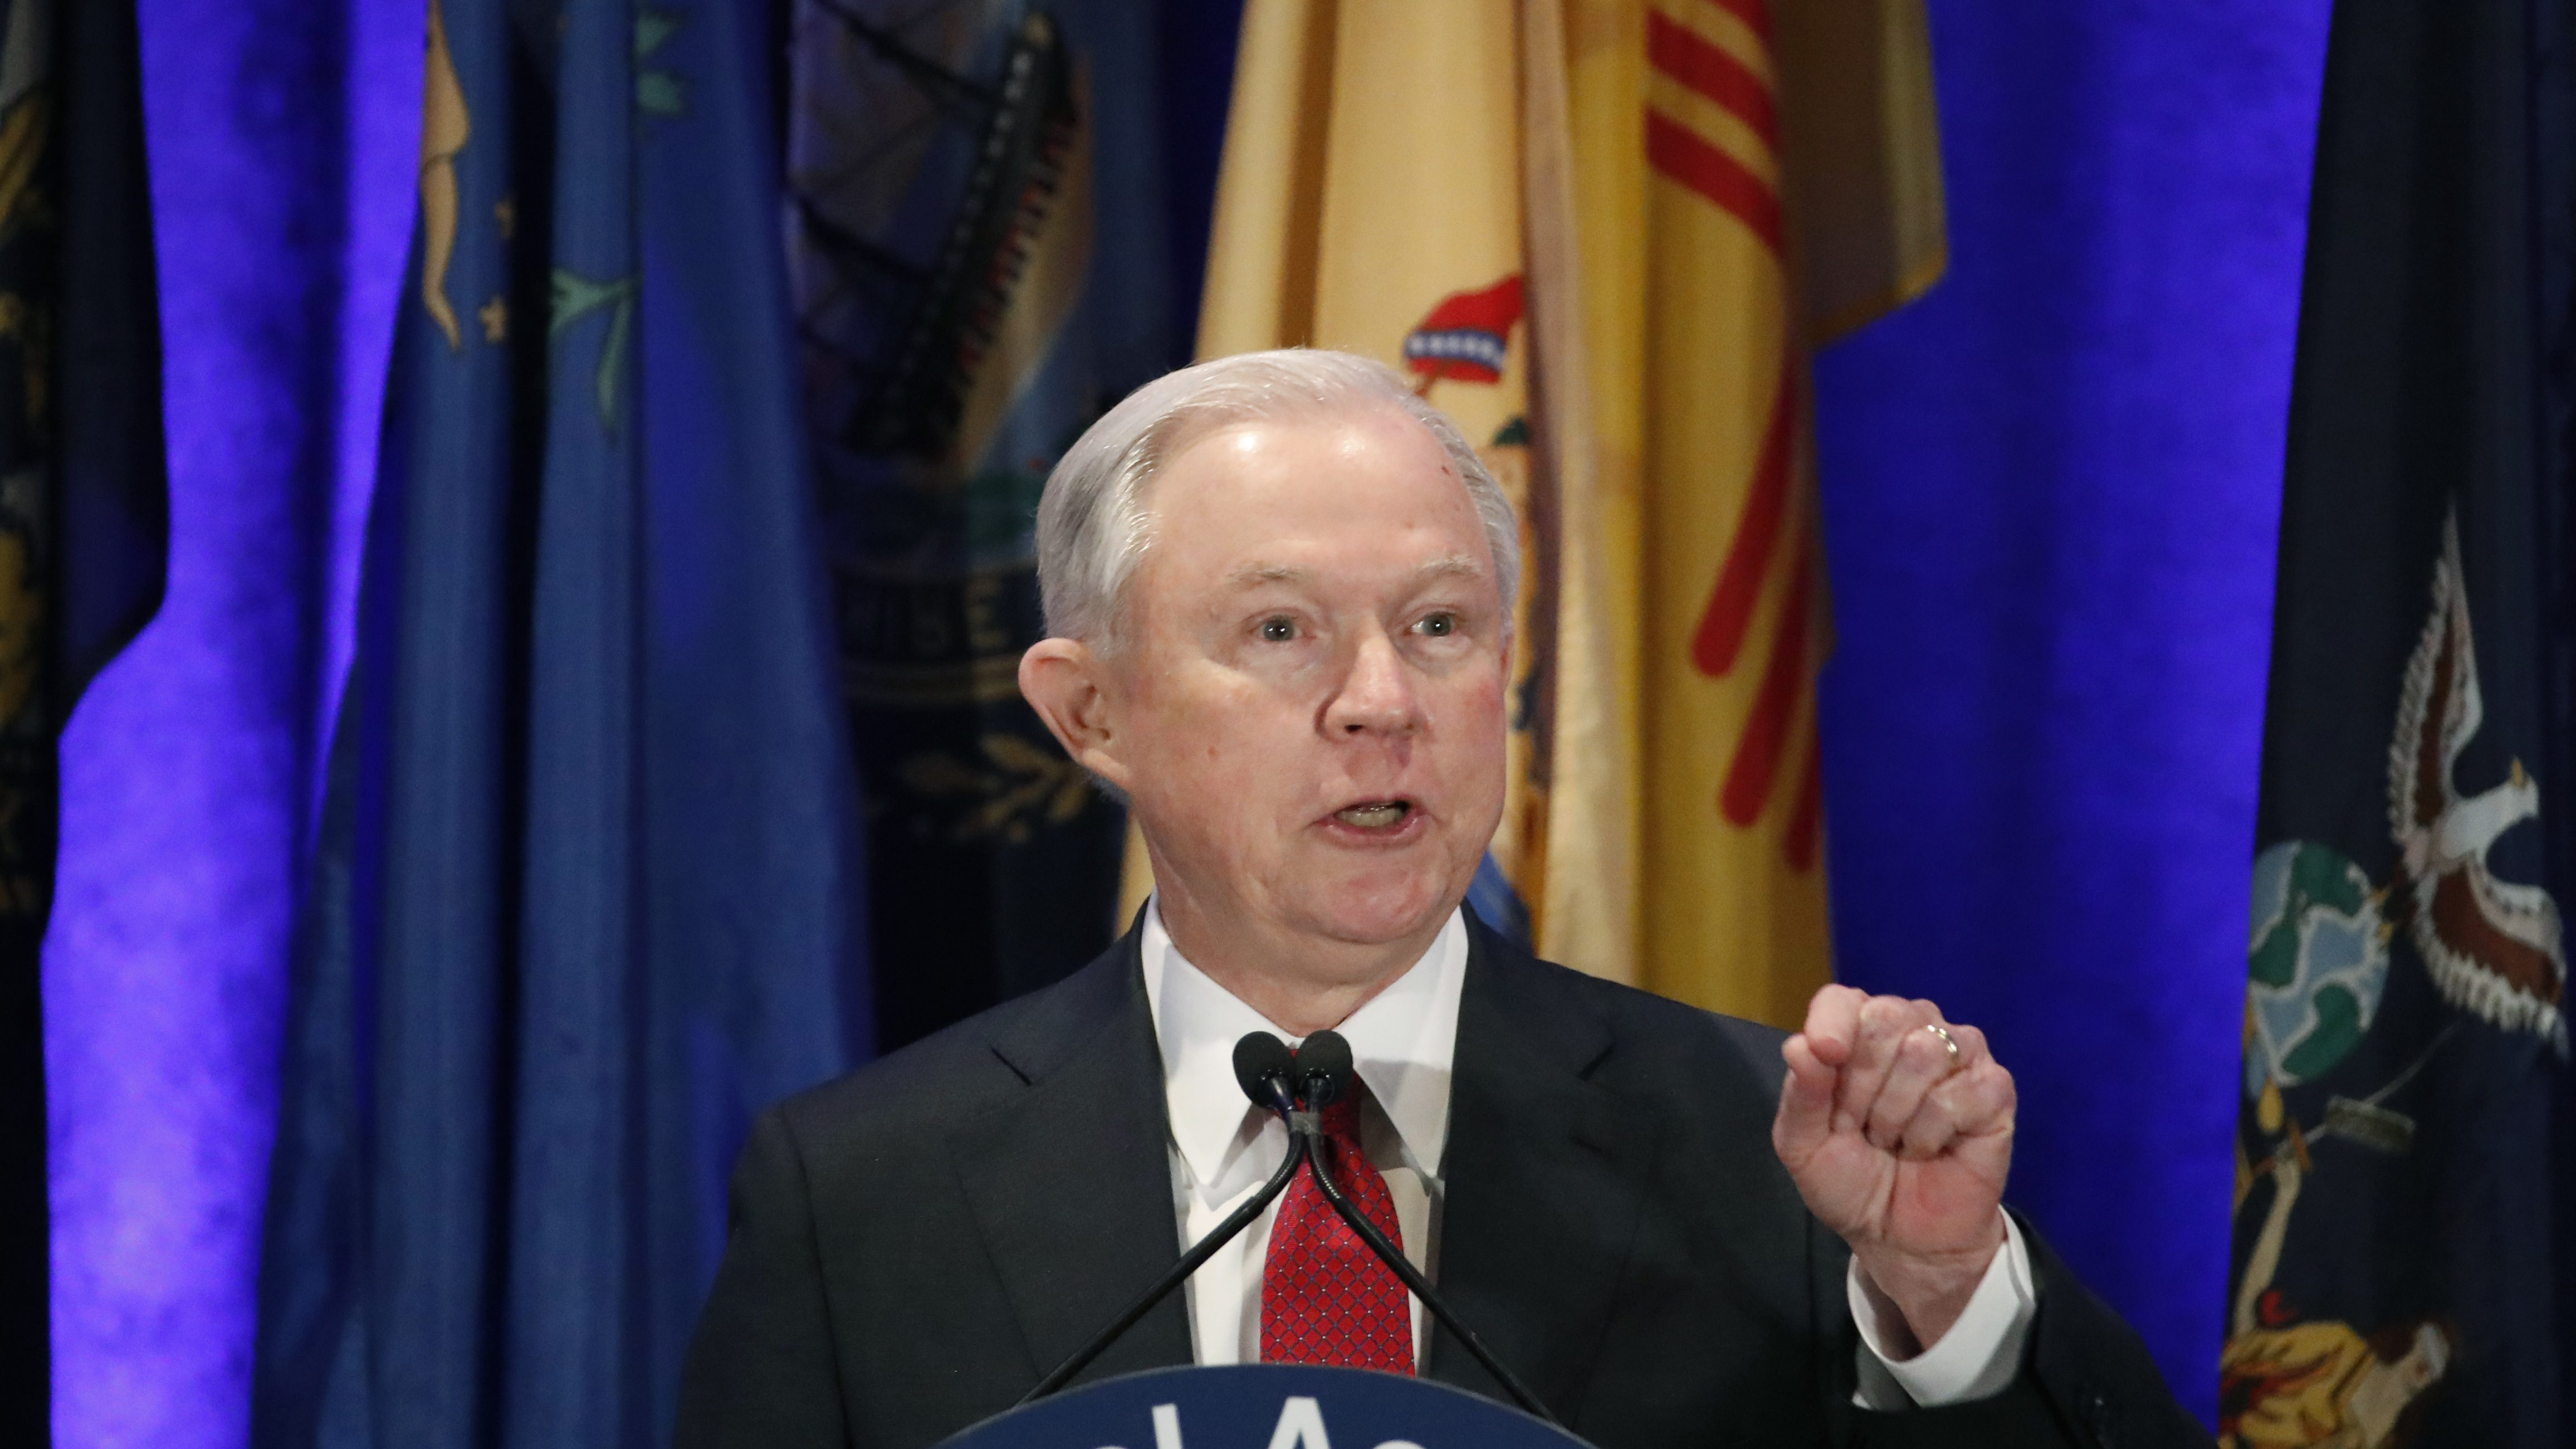 FILE - In this Tuesday, Feb. 28, 2017 file photo, Attorney General Jeff Sessions speaks at the National Association of Attorneys General annual winter meeting, in Washington. Sessions had two conversations with the Russian ambassador to the United States during the presidential campaign season last year, contact that immediately fueled calls for him to recuse himself from a Justice Department investigation into Russian interference in the election. The Justice Department said Wednesday night, March 1, 2017, that the two conversations took place last year when Sessions was a senator. (AP Photo/Alex Brandon, File)